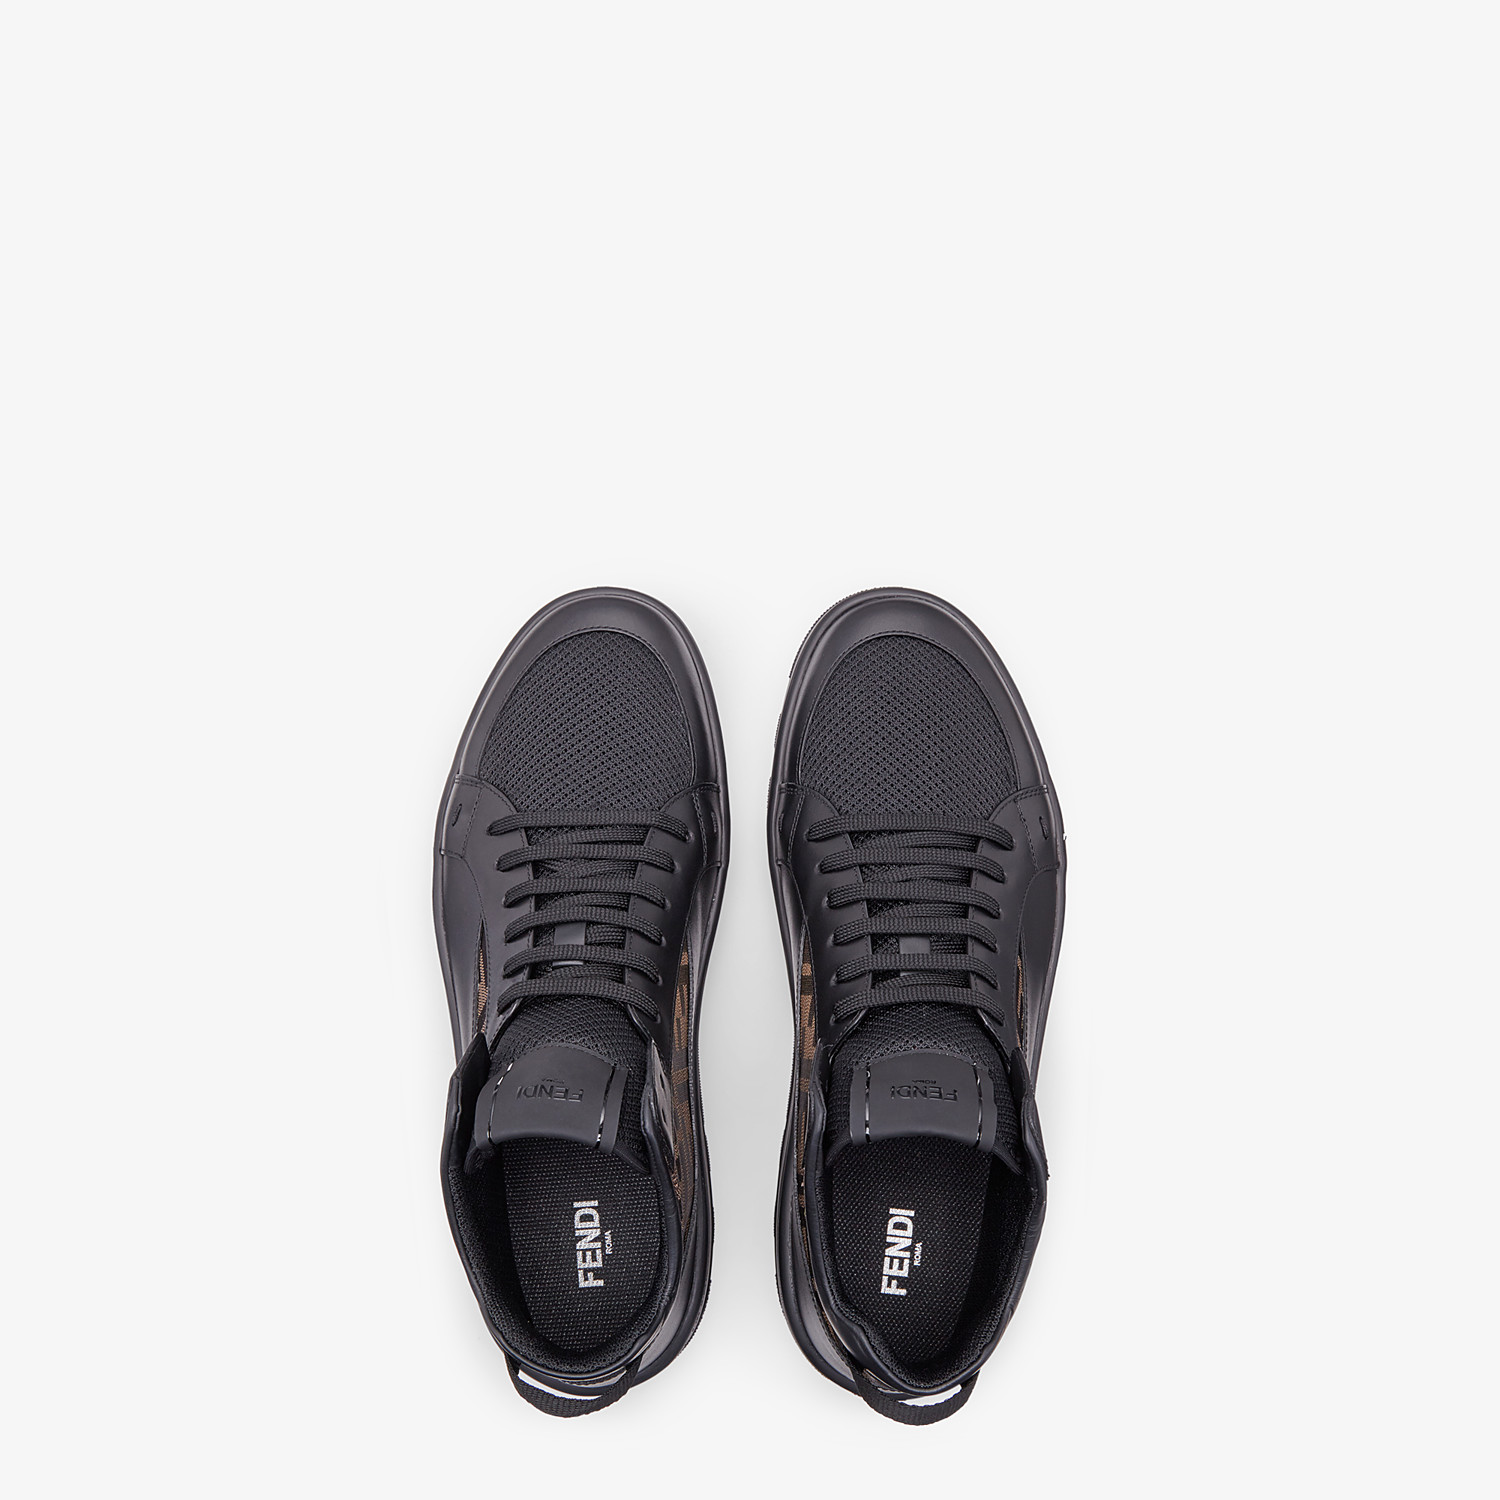 FENDI SNEAKERS - Black leather mid-top - view 4 detail